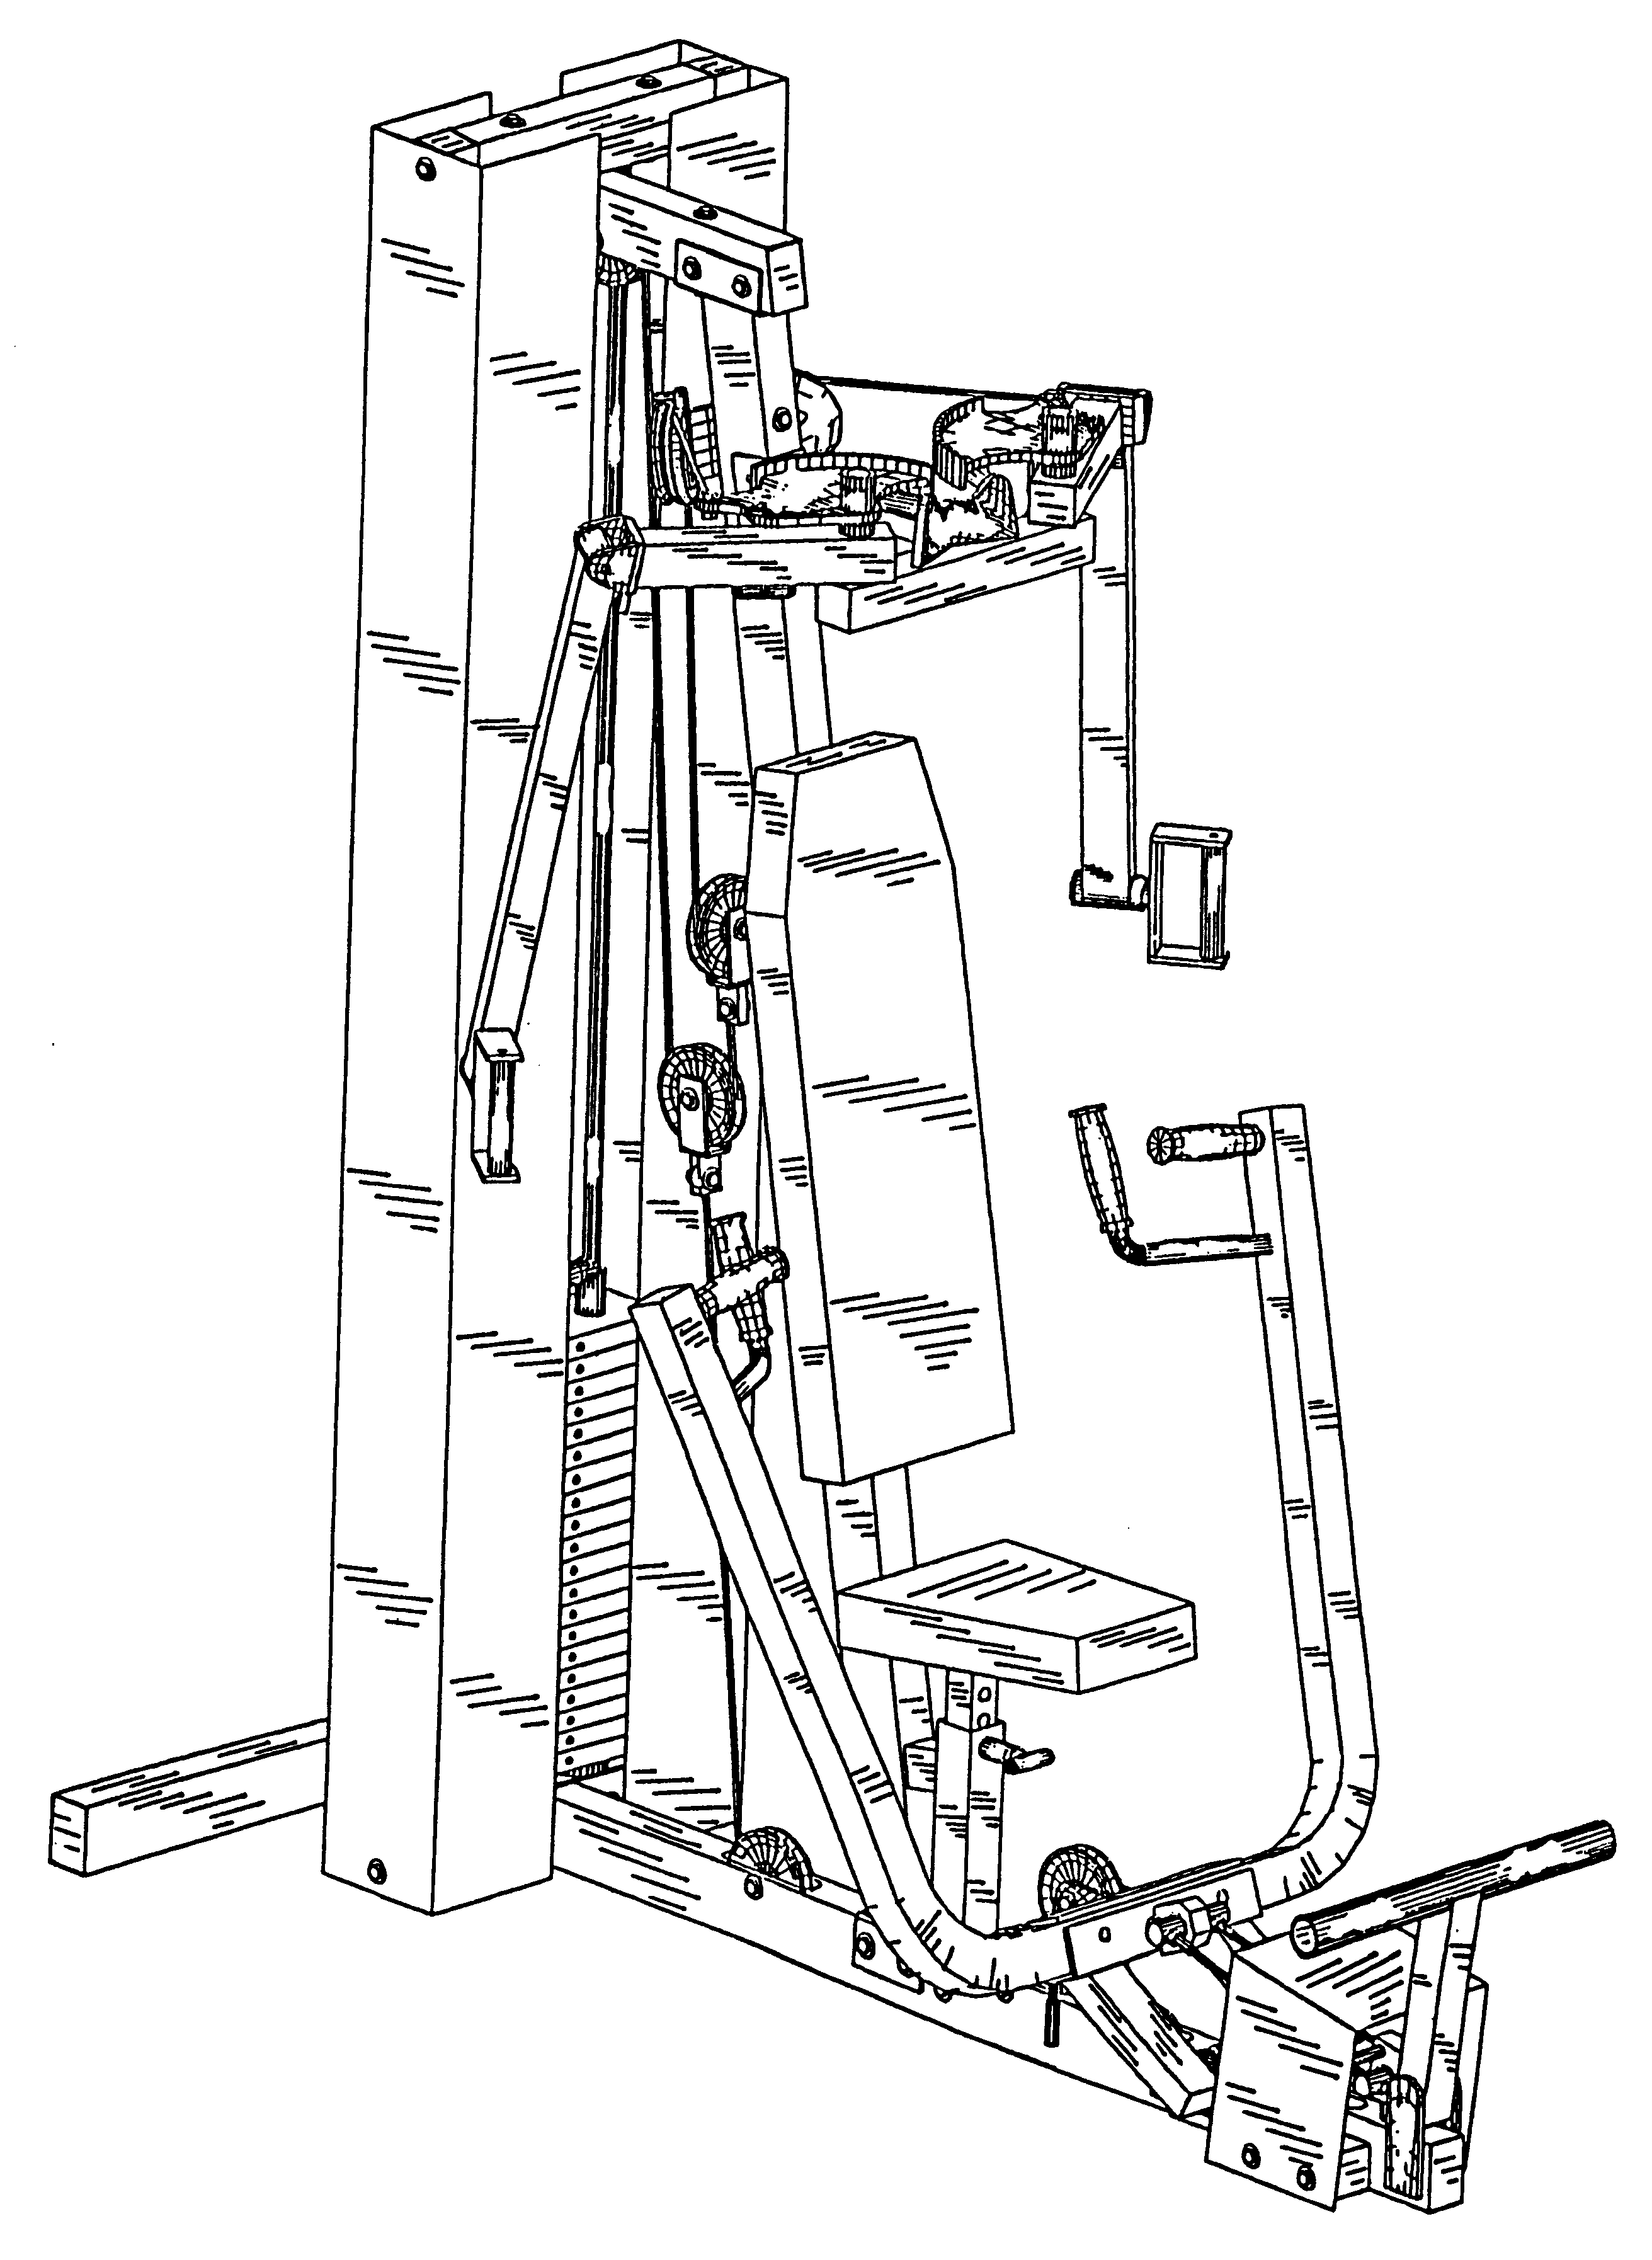 Patent Usd439941 Chest Press And Pec Fly Exercise